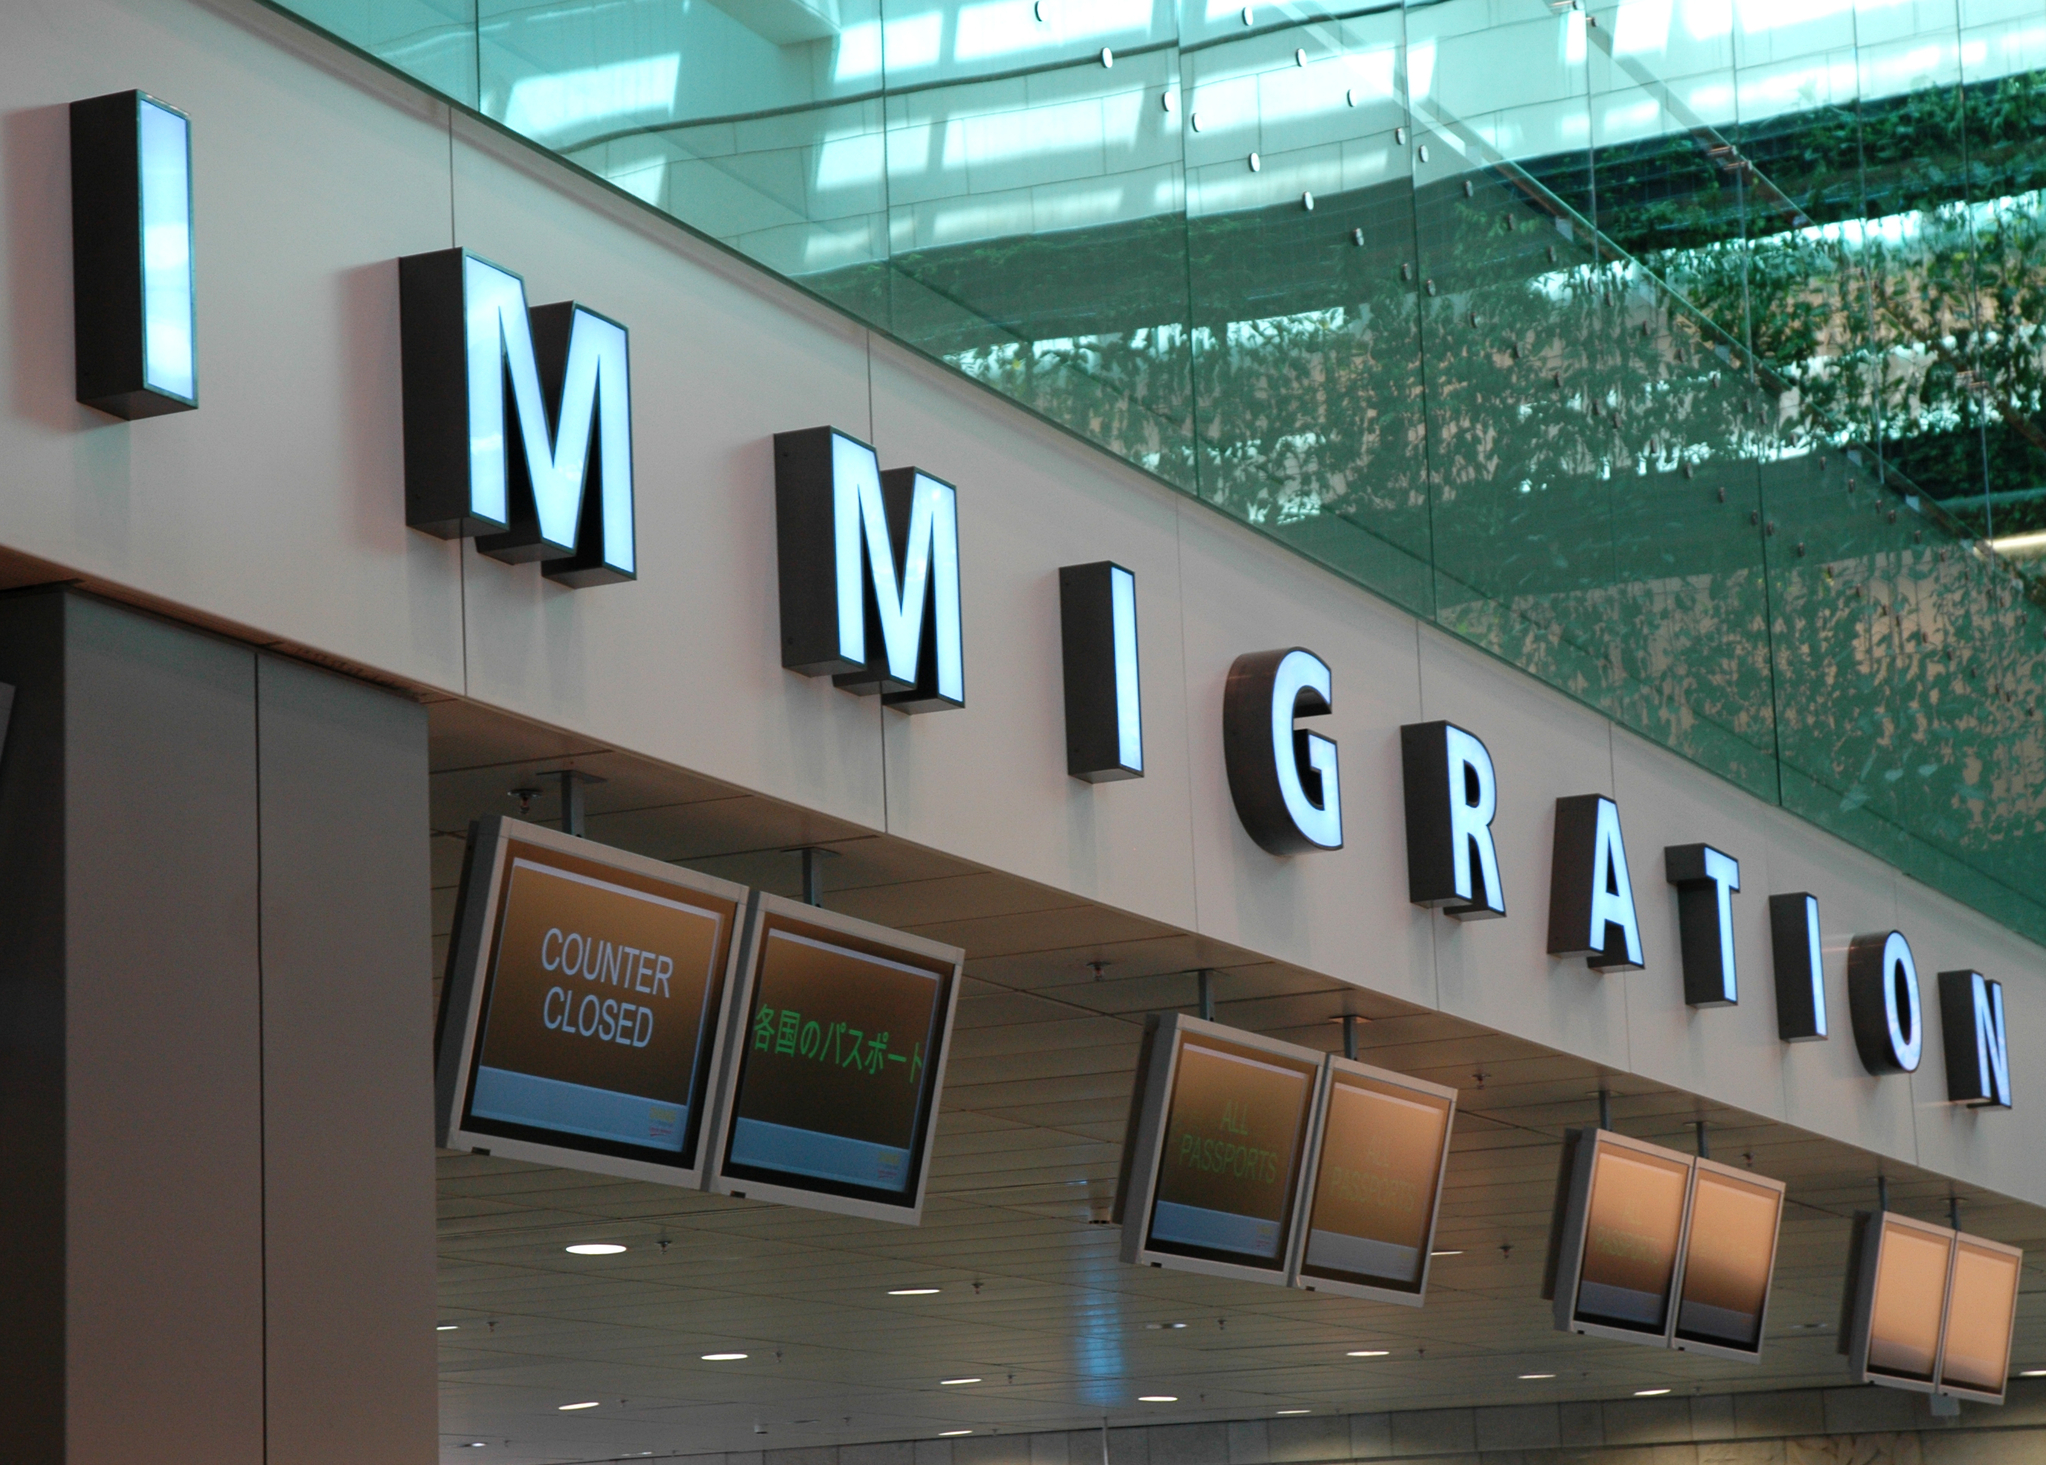 http://www.dreamstime.com/royalty-free-stock-photos-immigration-image5361678